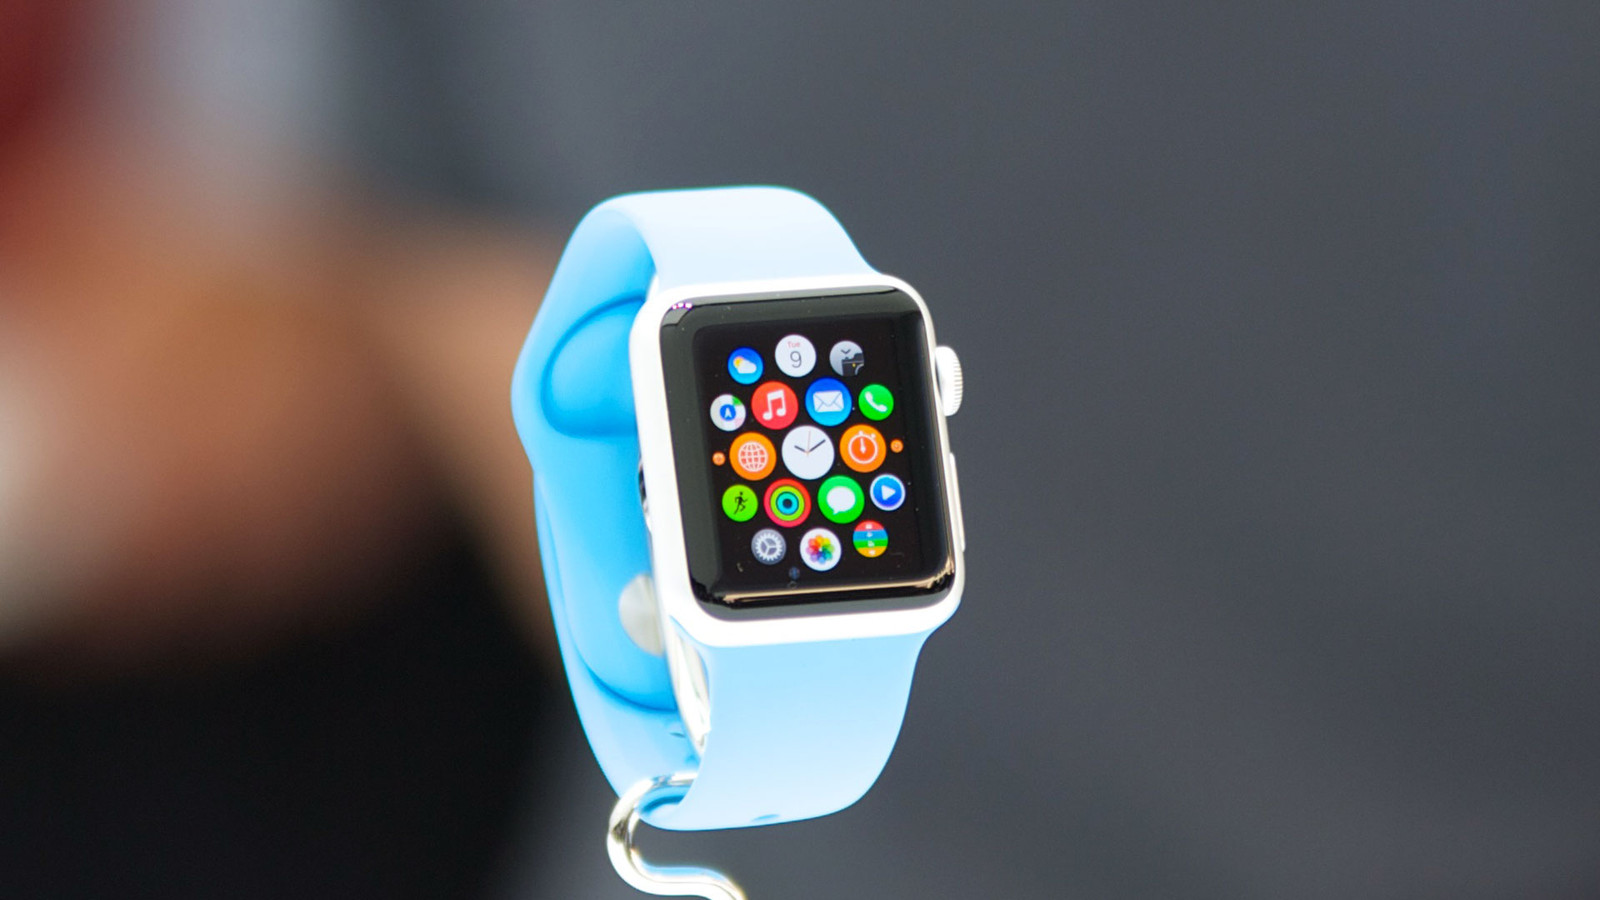 5 Apps for Apple Watch to Download Right Away